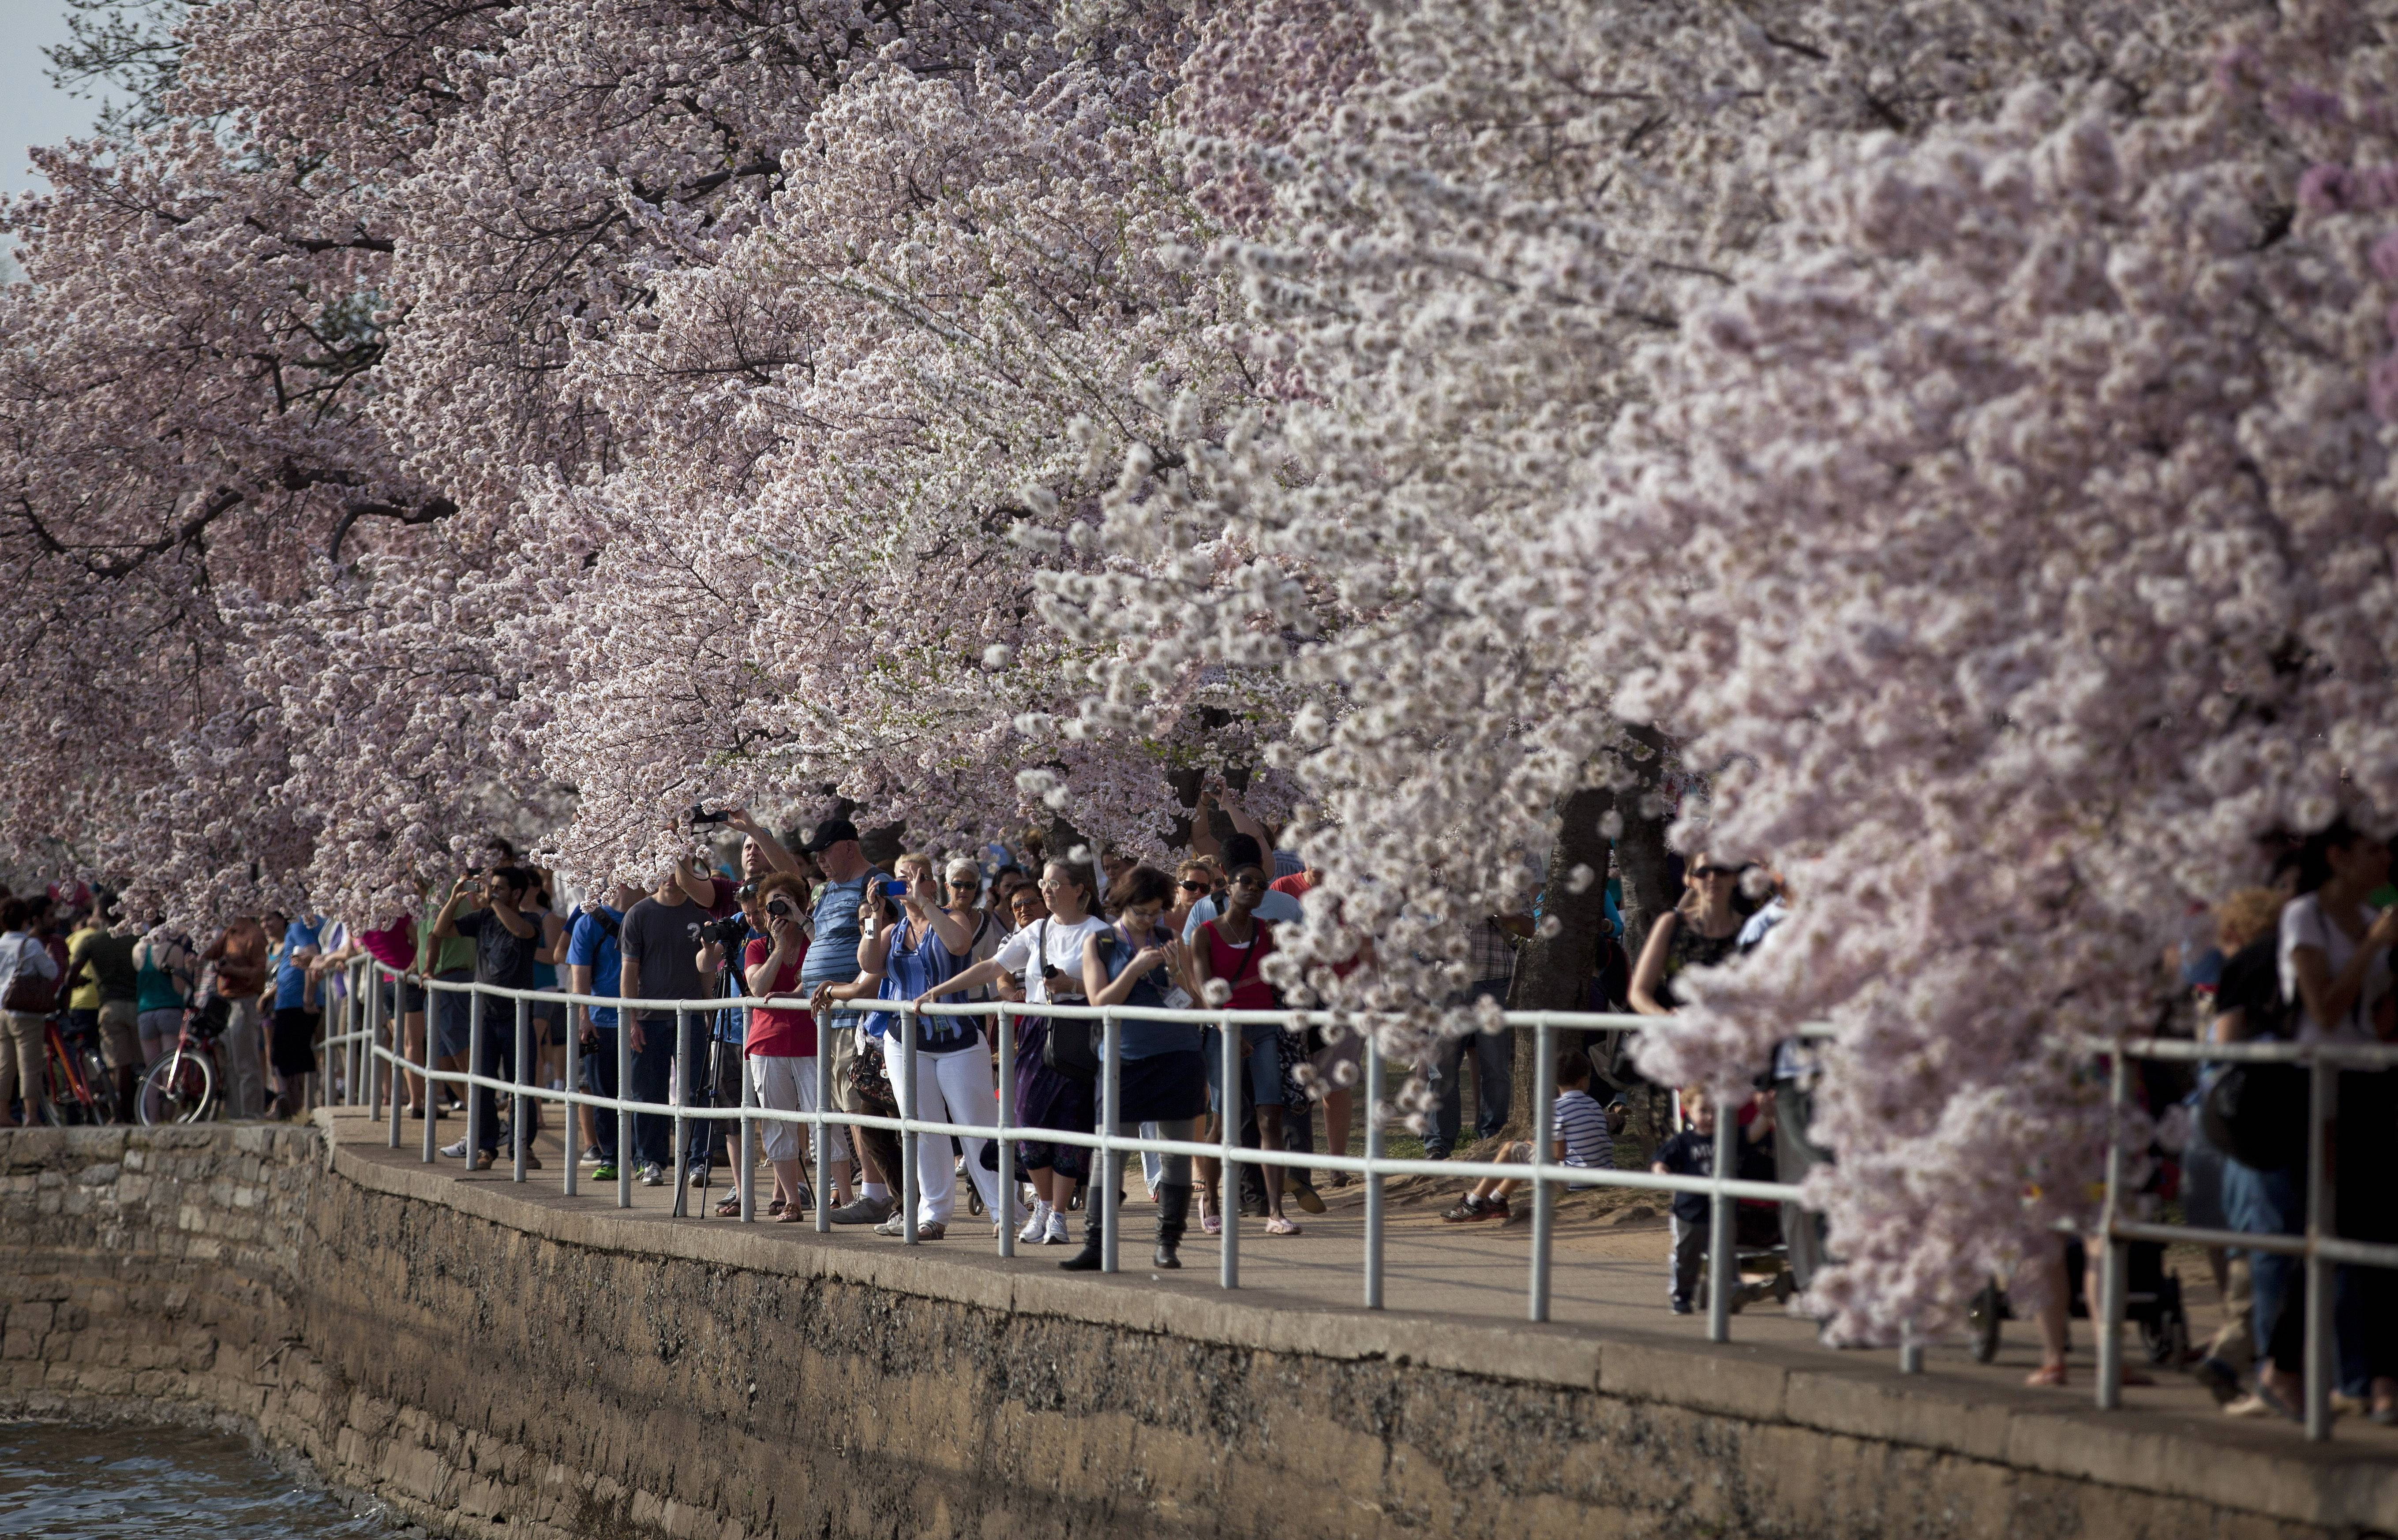 Last year visitors walking along the Tidal Basin in Washington, D.C., were able to enjoy the cherry blossom trees in full bloom on April 10. Washington's famous cherry blossom trees are expected to bring the first sure sign of spring between April 8 and 12, when they're predicted to reach peak bloom.